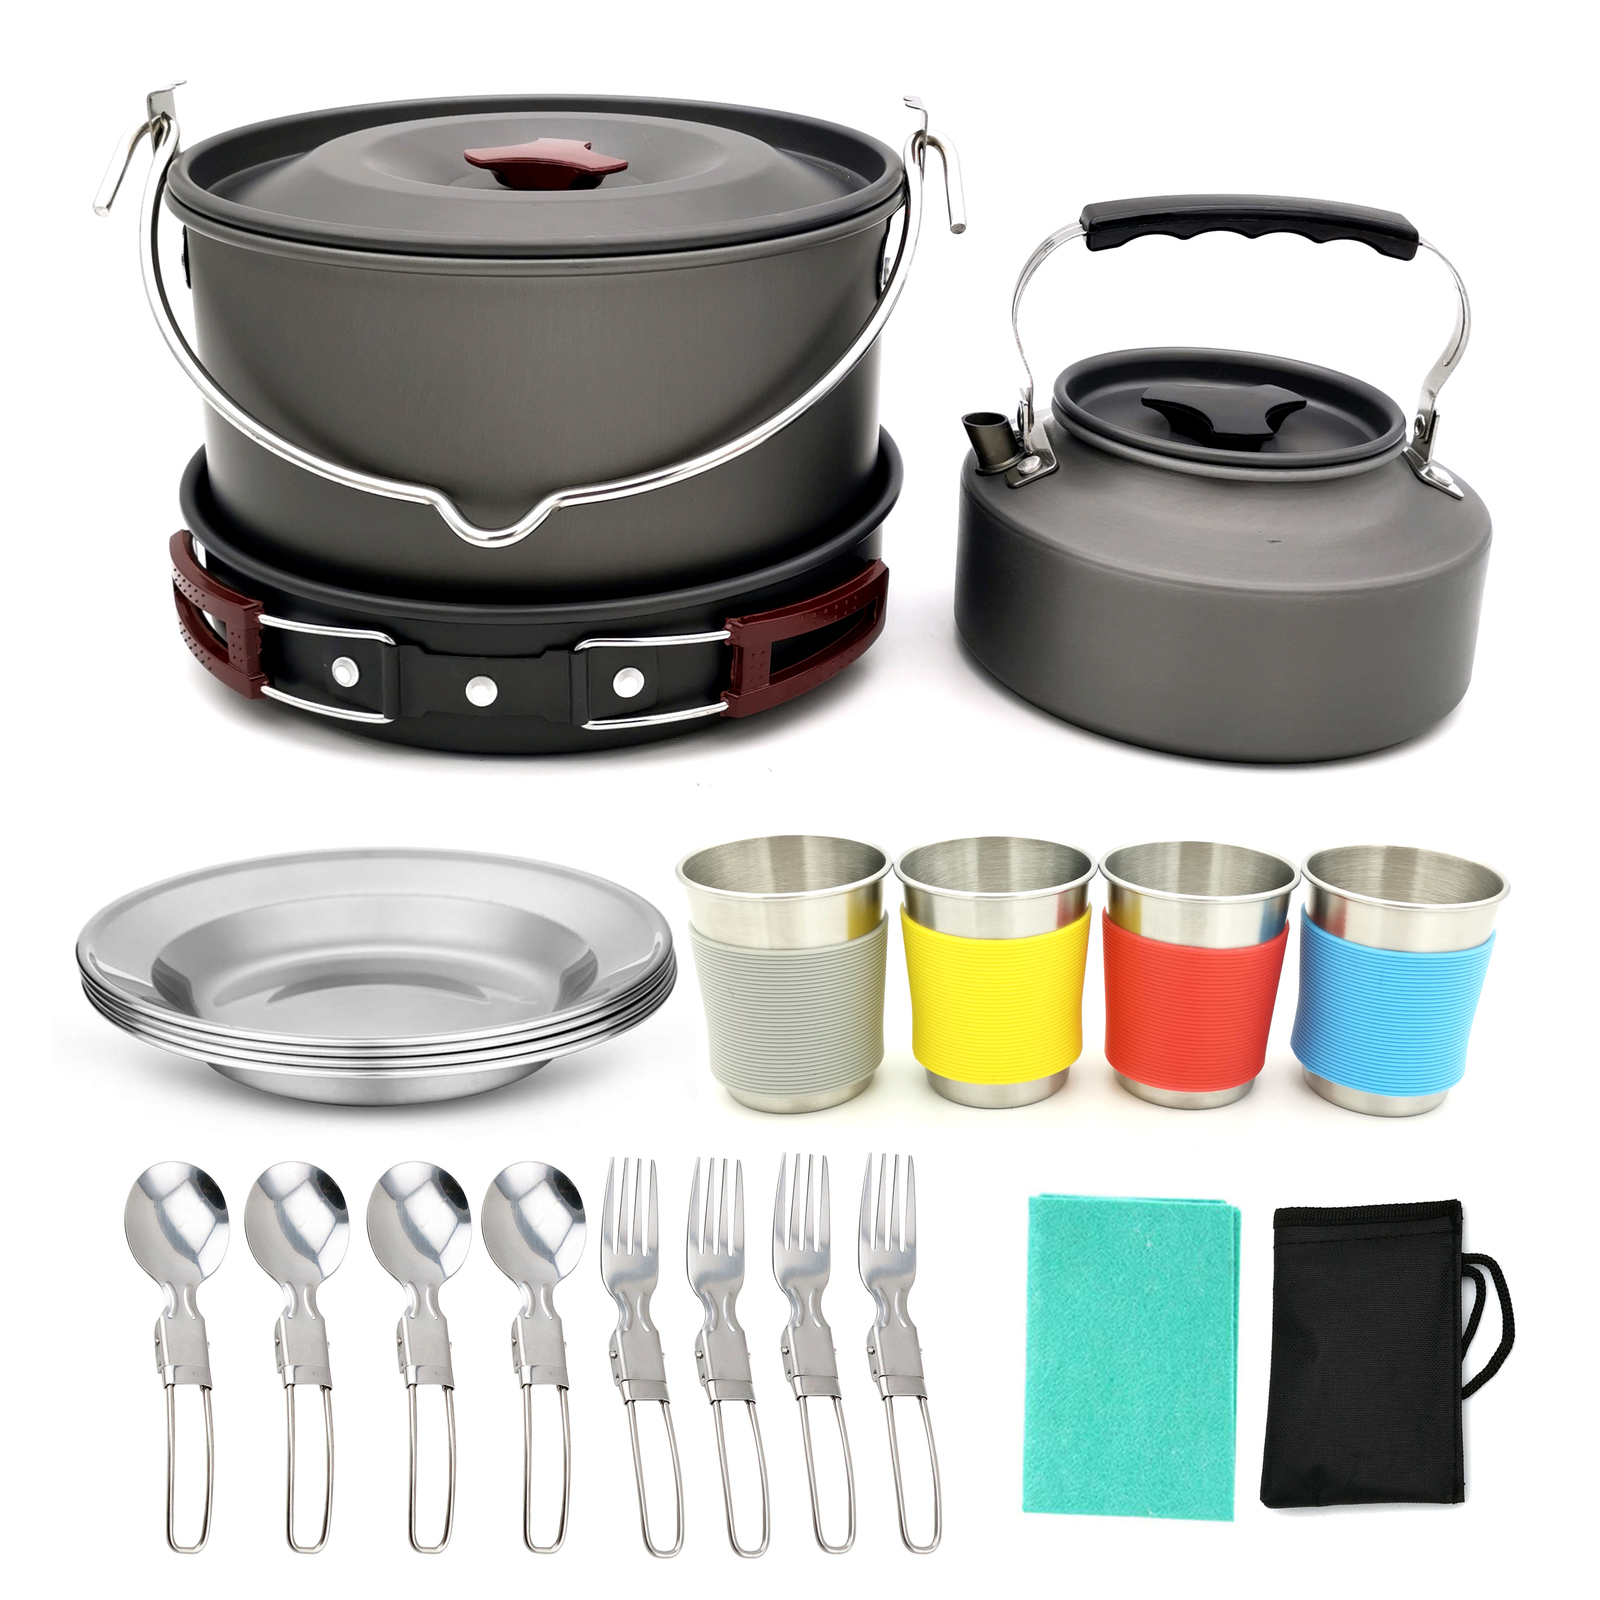 Outdoor Camping Kitchen Cook Set - 19 Piece image